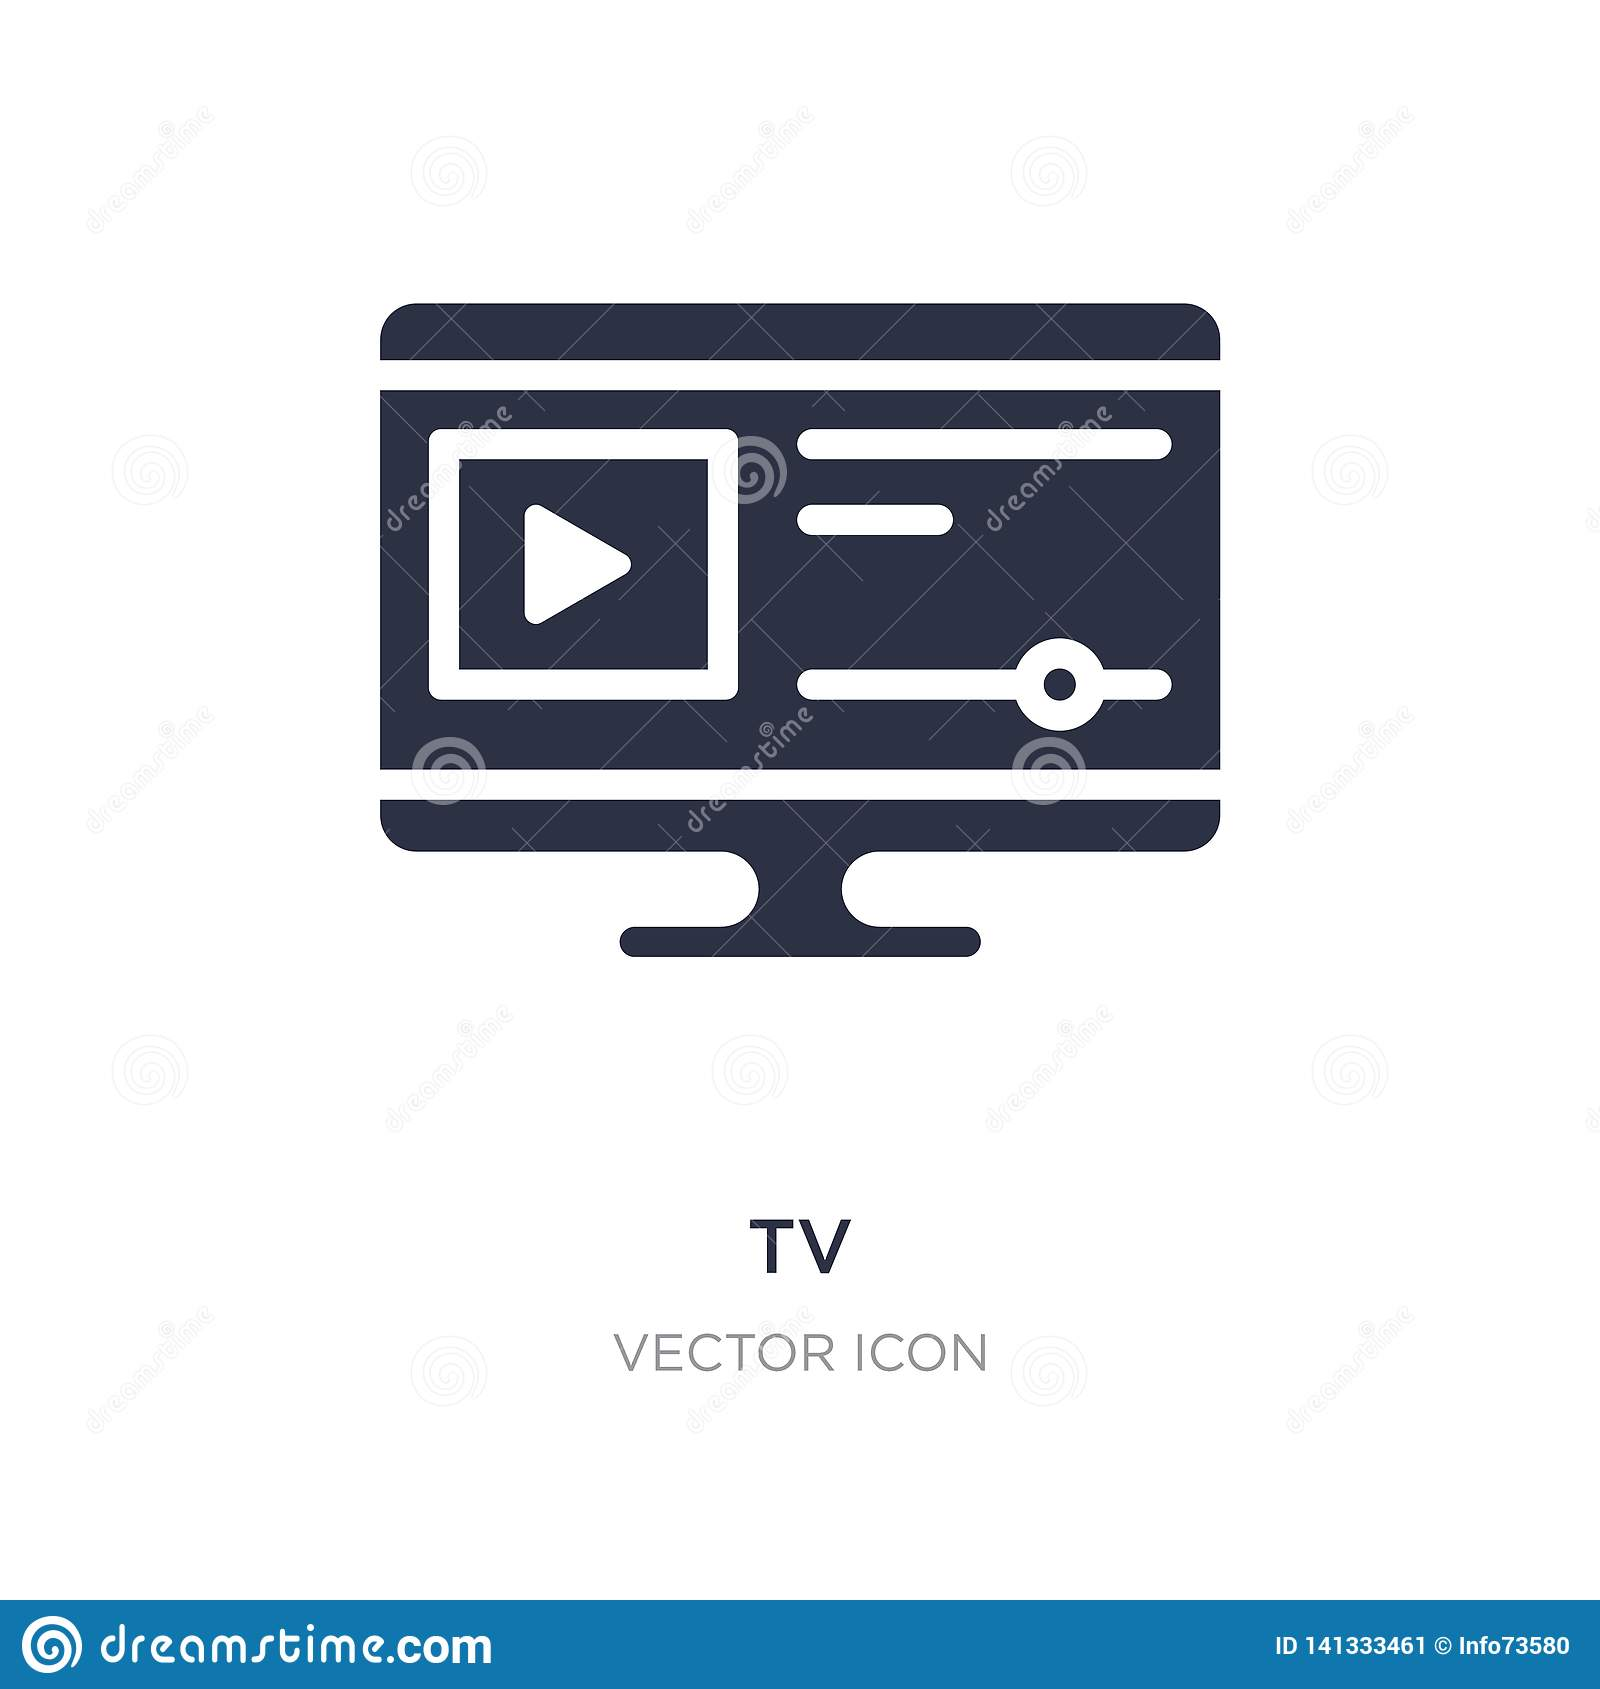 tv icon on white background. Simple element illustration from Blogger and influencer concept